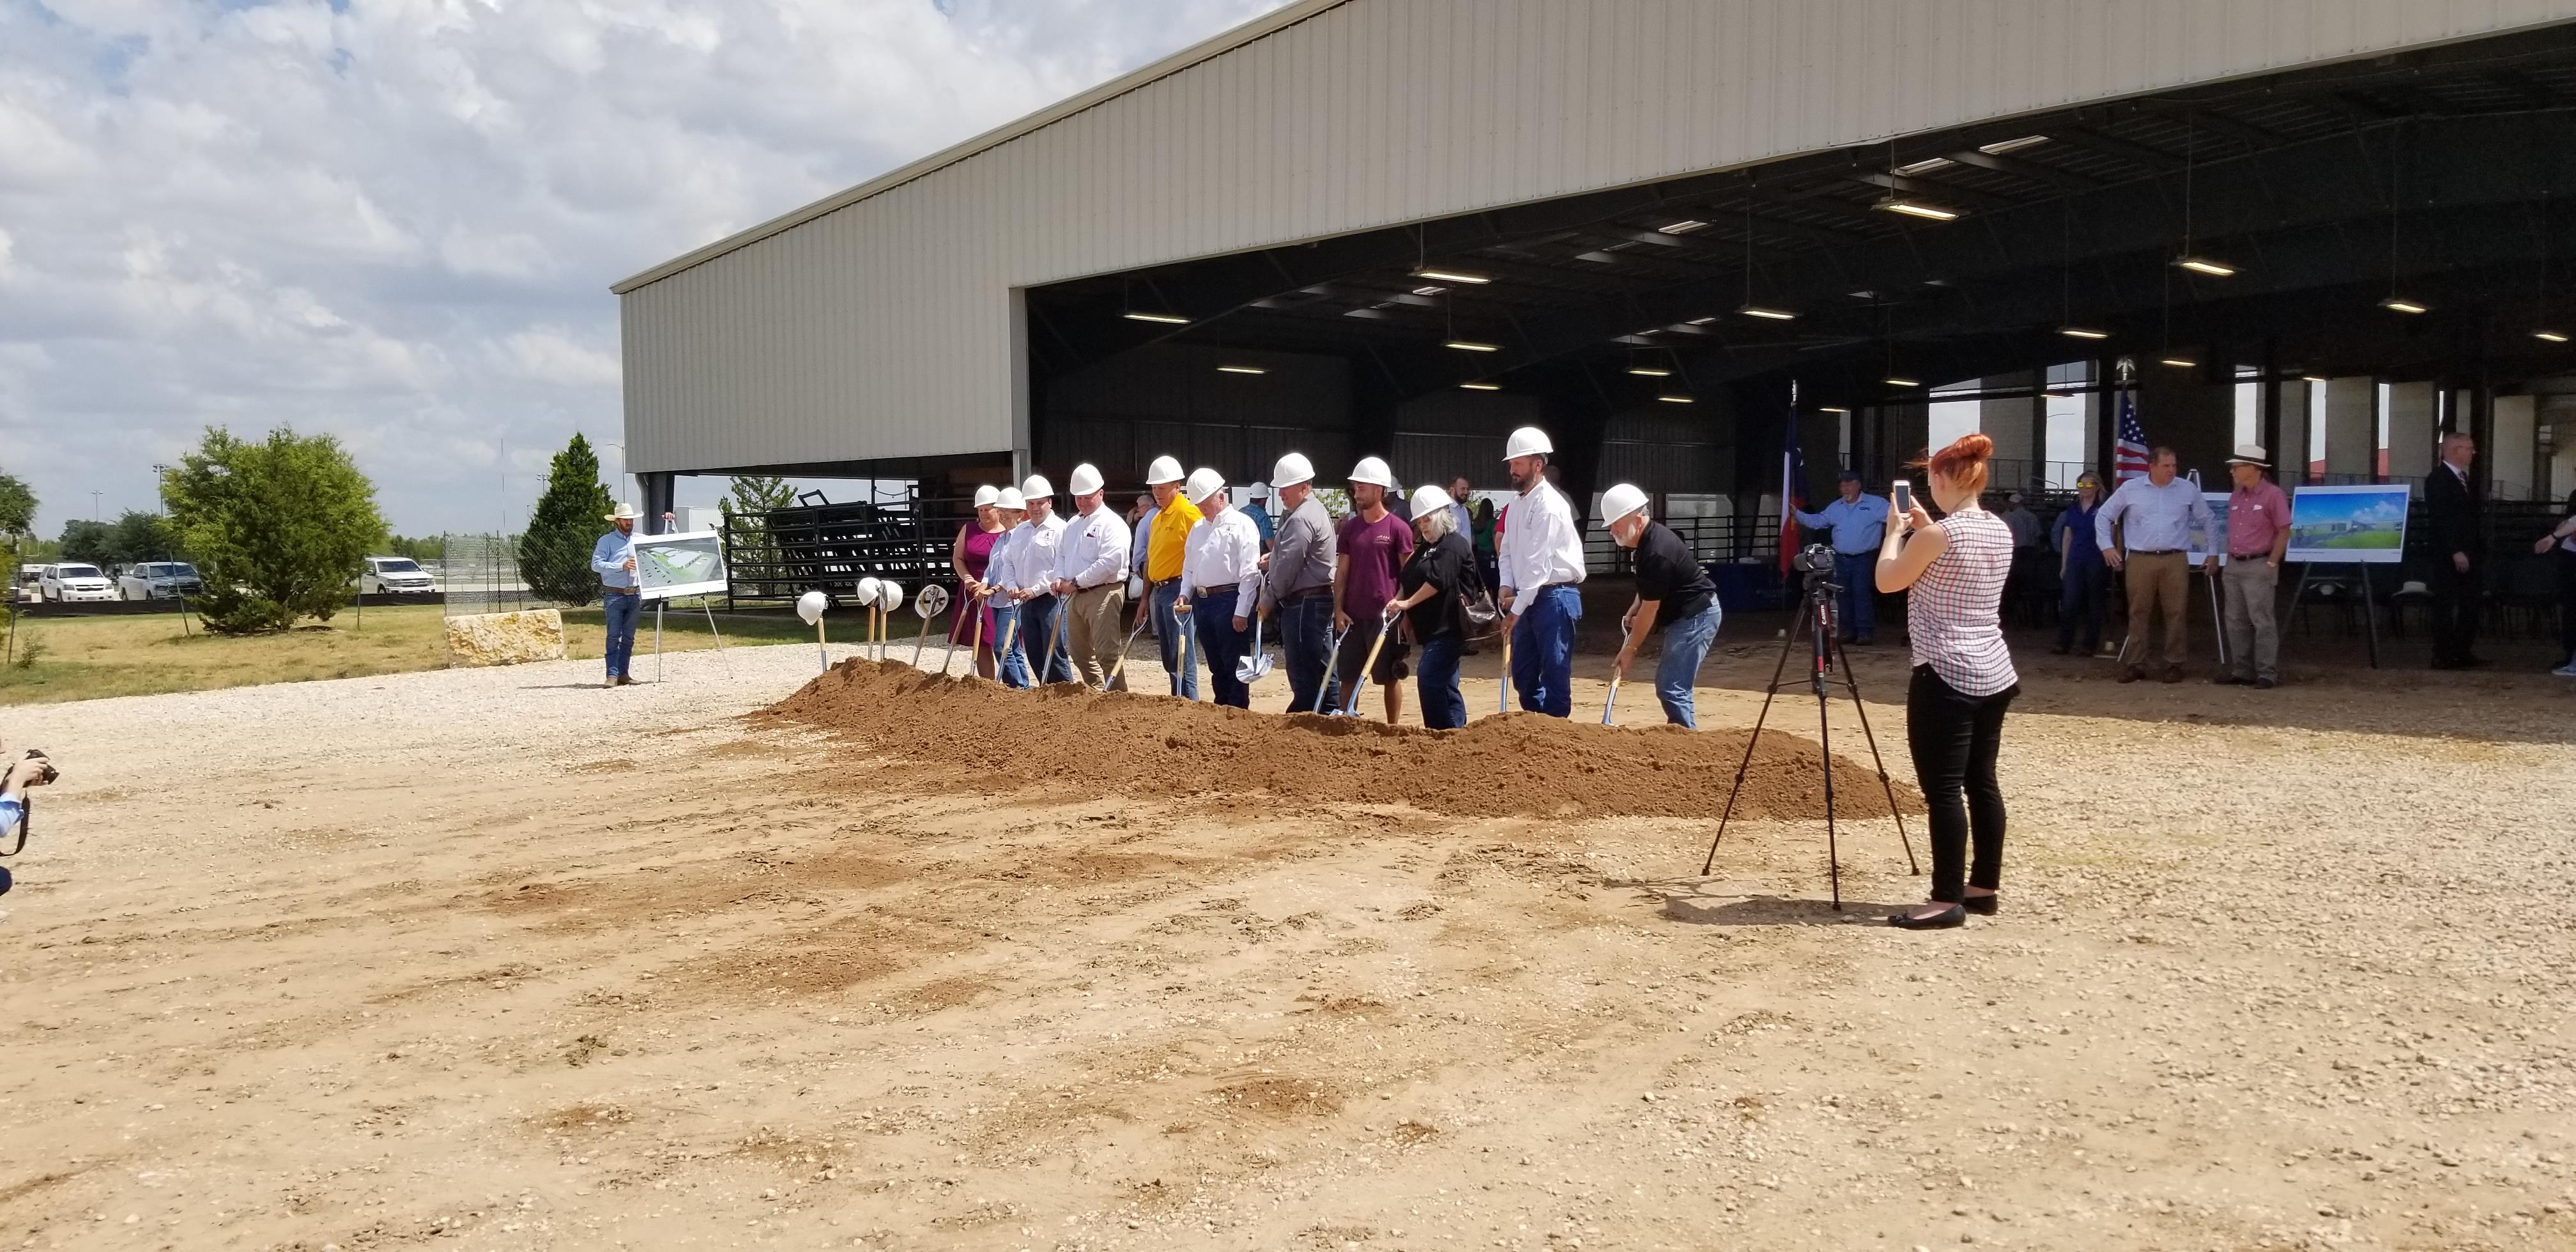 Commissioner Cook joins several officials including Pct. 4 Commissioner Russ Boles who all donned hard hats and are holding shovels ready for the signal to break ground.